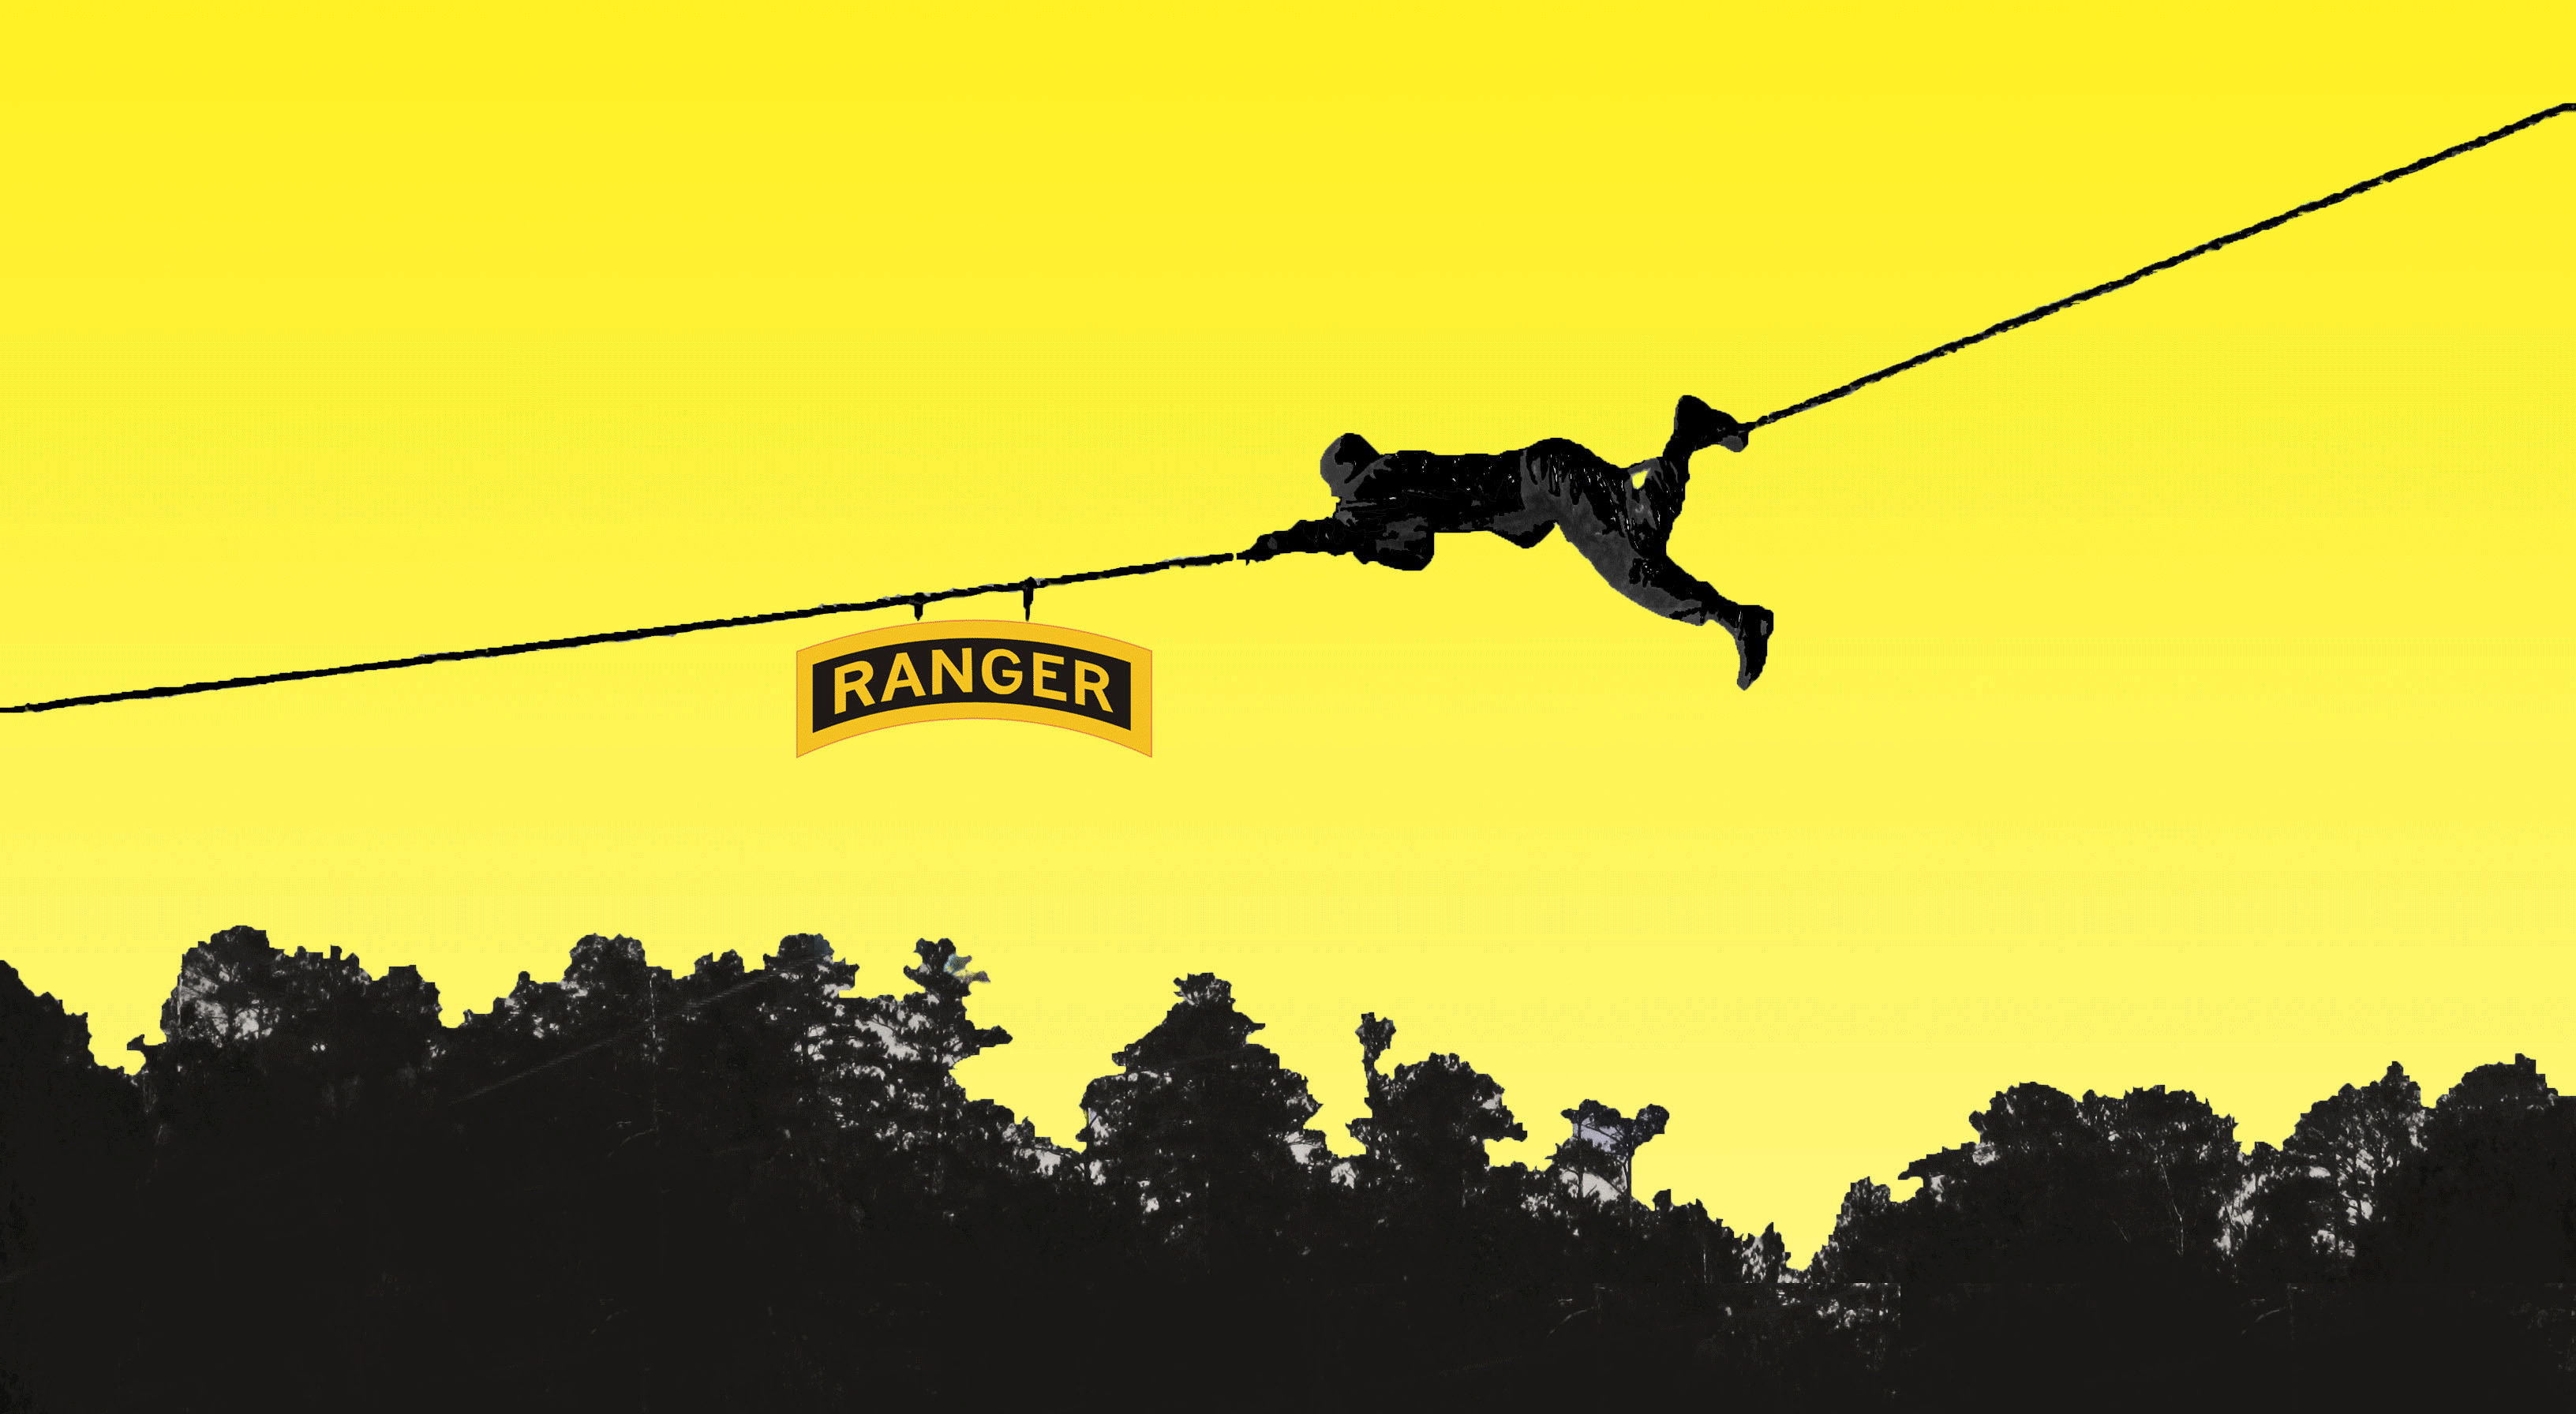 3264x1792 Army Ranger Wallpaper - The Wallpaper .